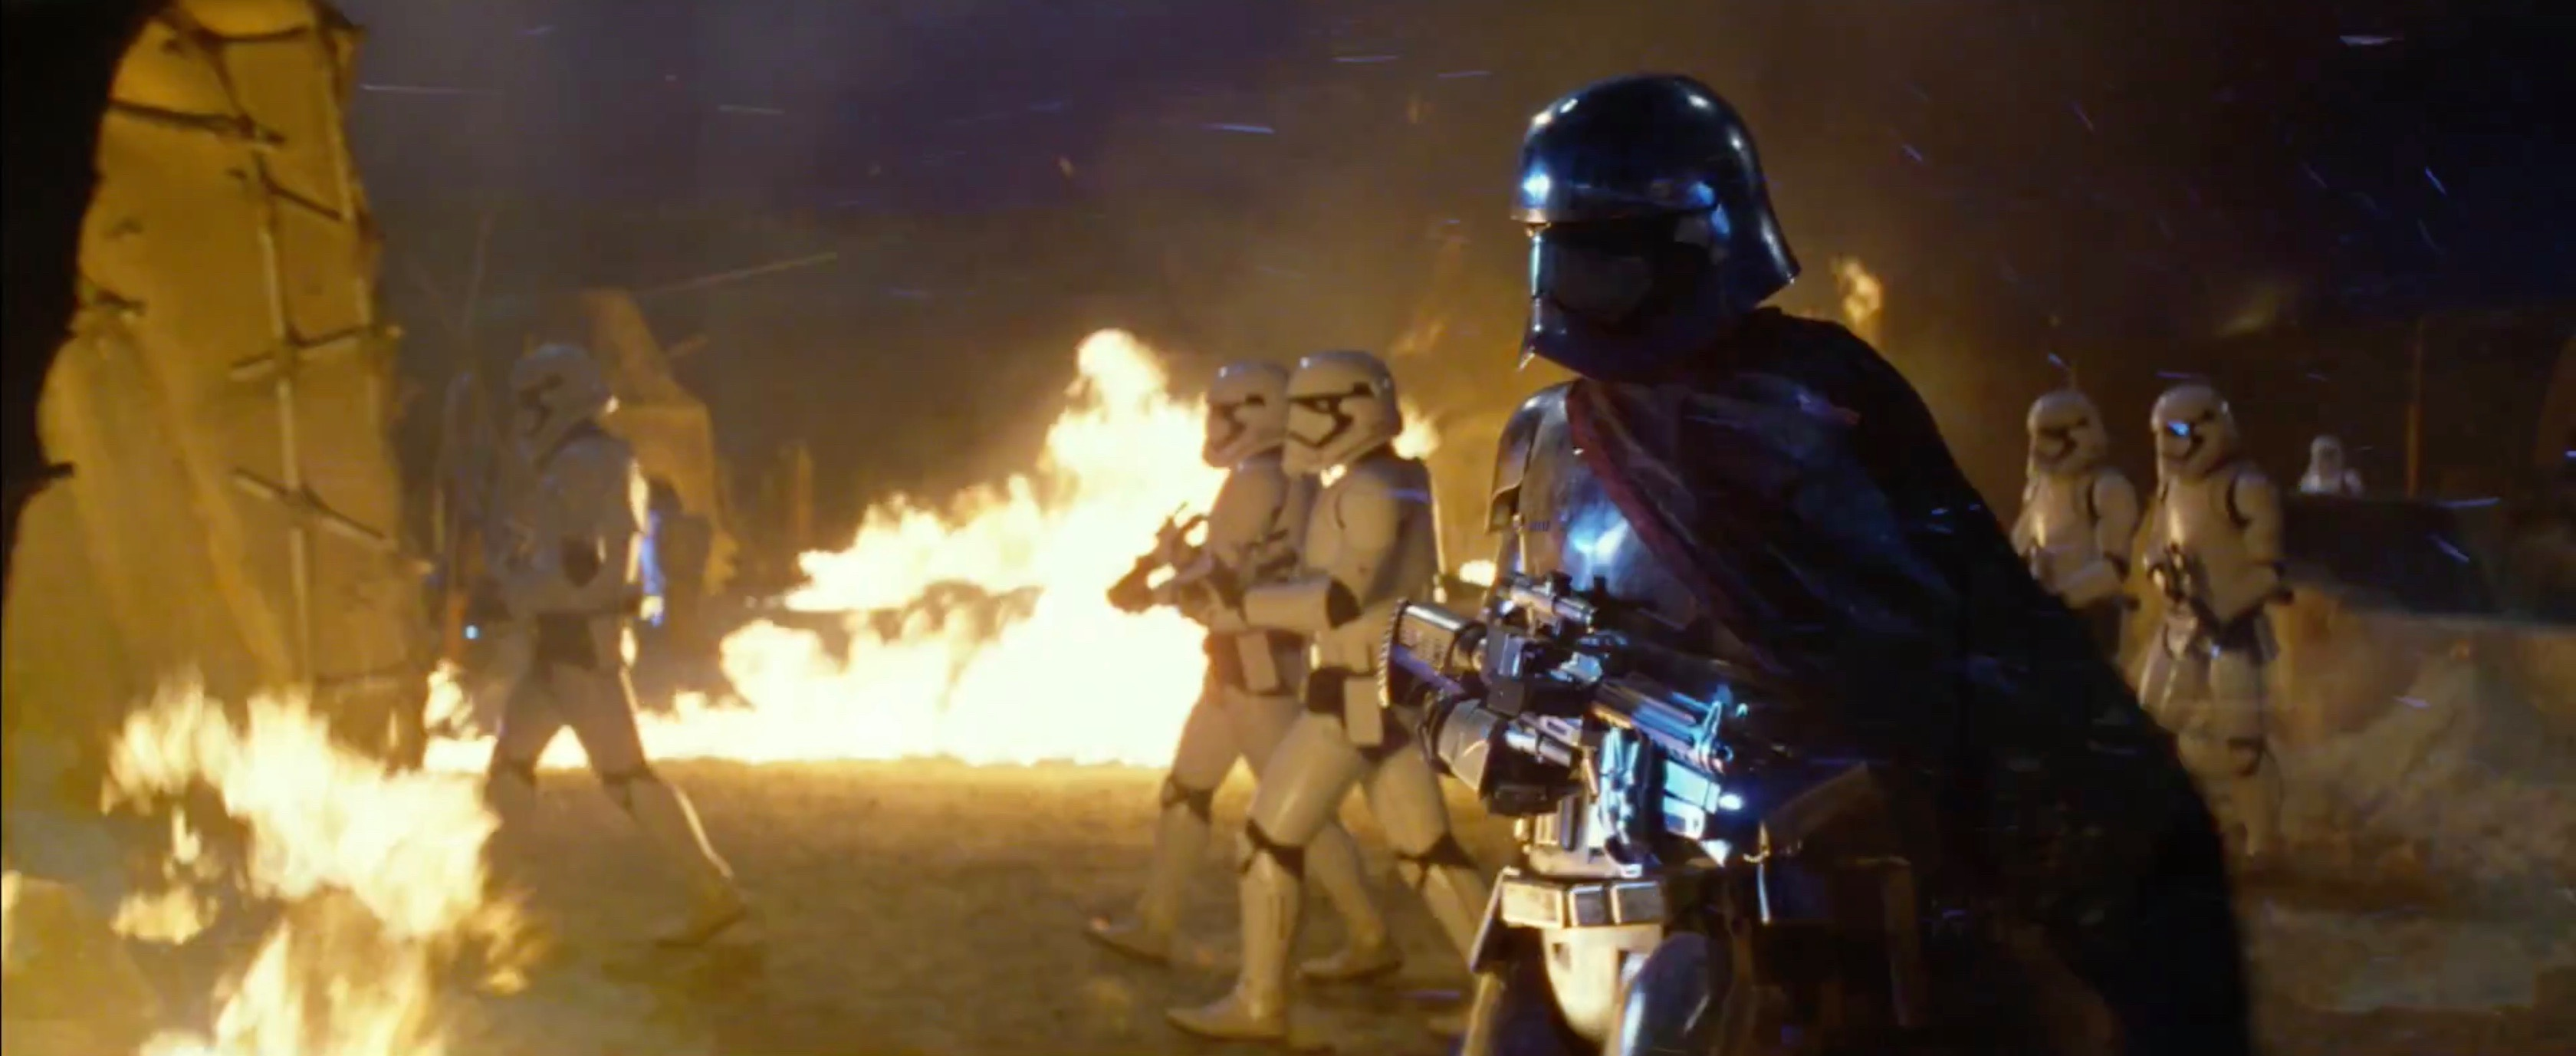 Star Wars VII Trailer Analysis - 12 of 20